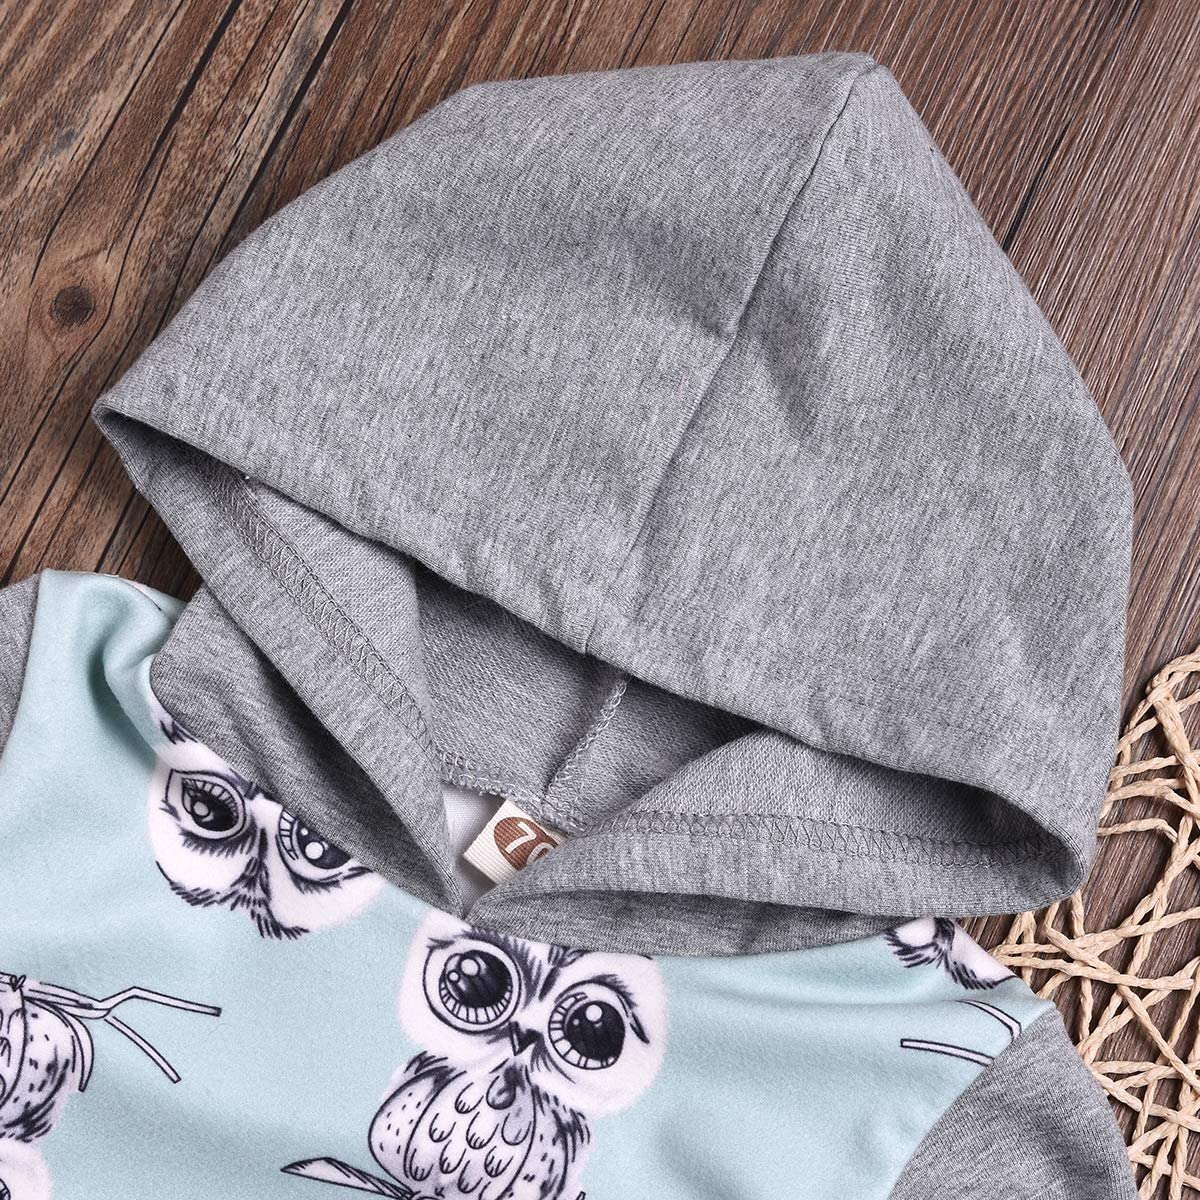 Chennie Boy Hoodis Suit Kid Toddler Boy Owl Printed Hooded Shirt Pants Party Casual Outfits